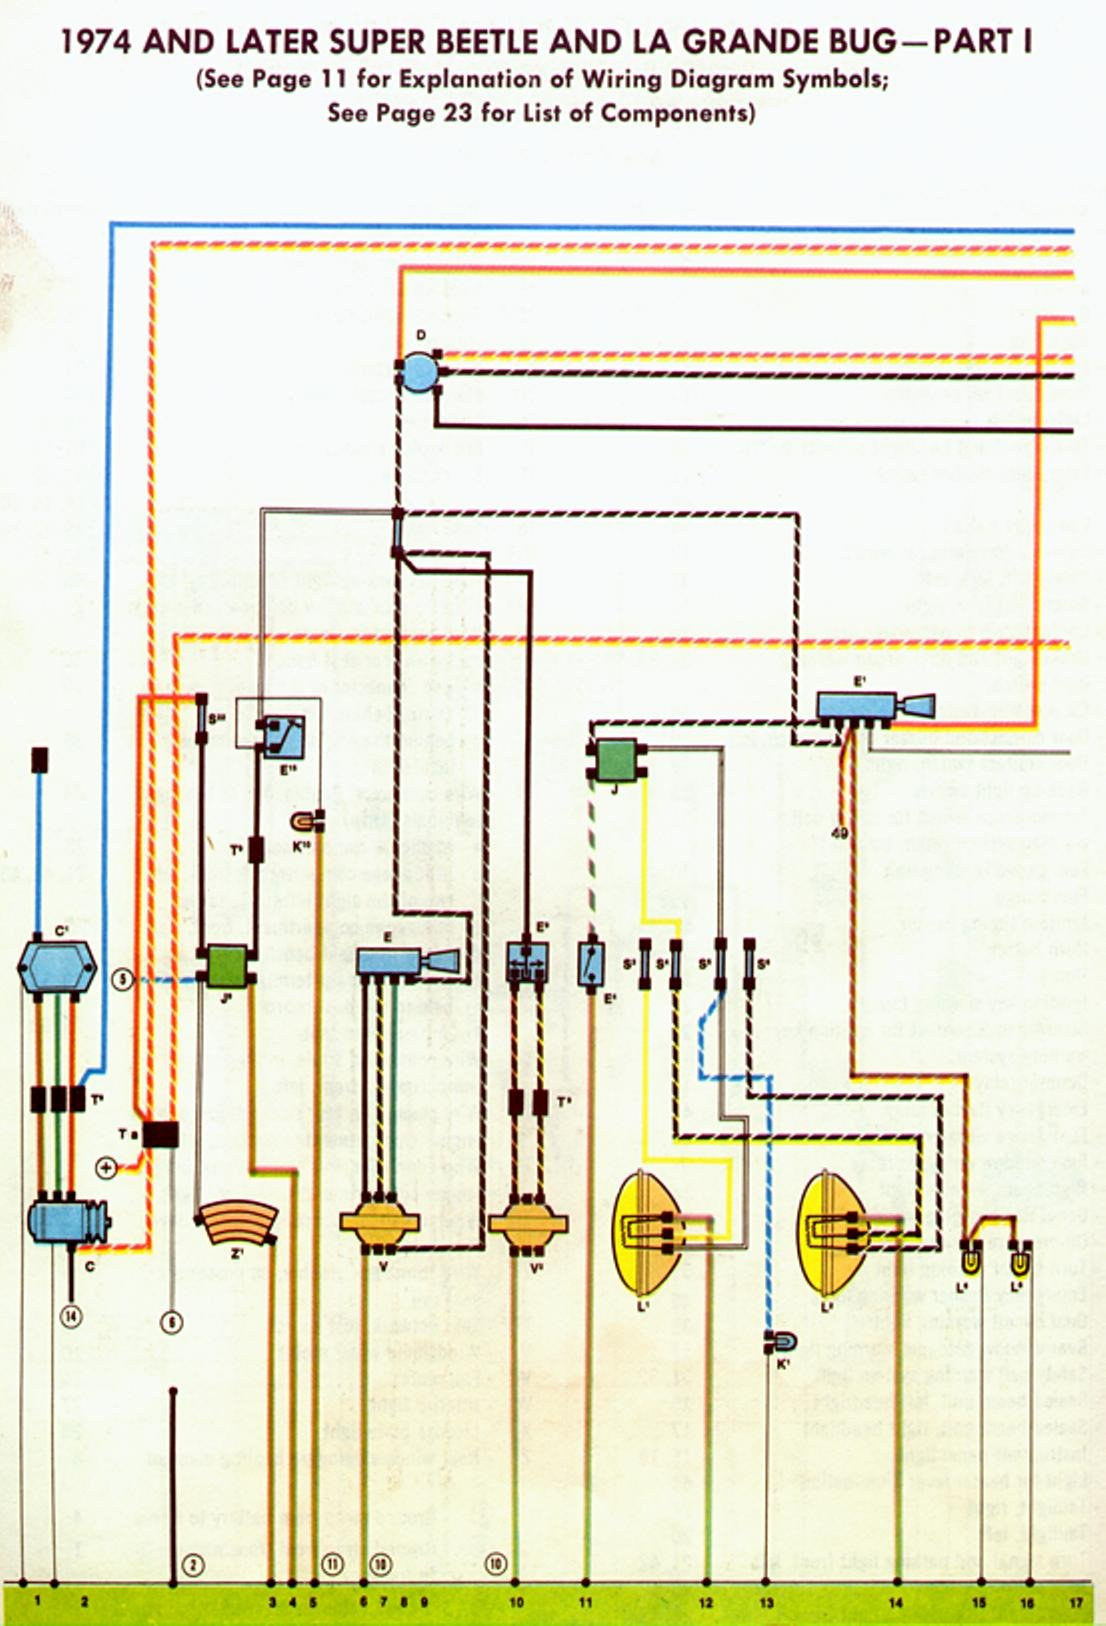 bug 74+75 a 1966 vw bug wiring diagram wiring diagram simonand 1973 vw super beetle wiring harness at crackthecode.co